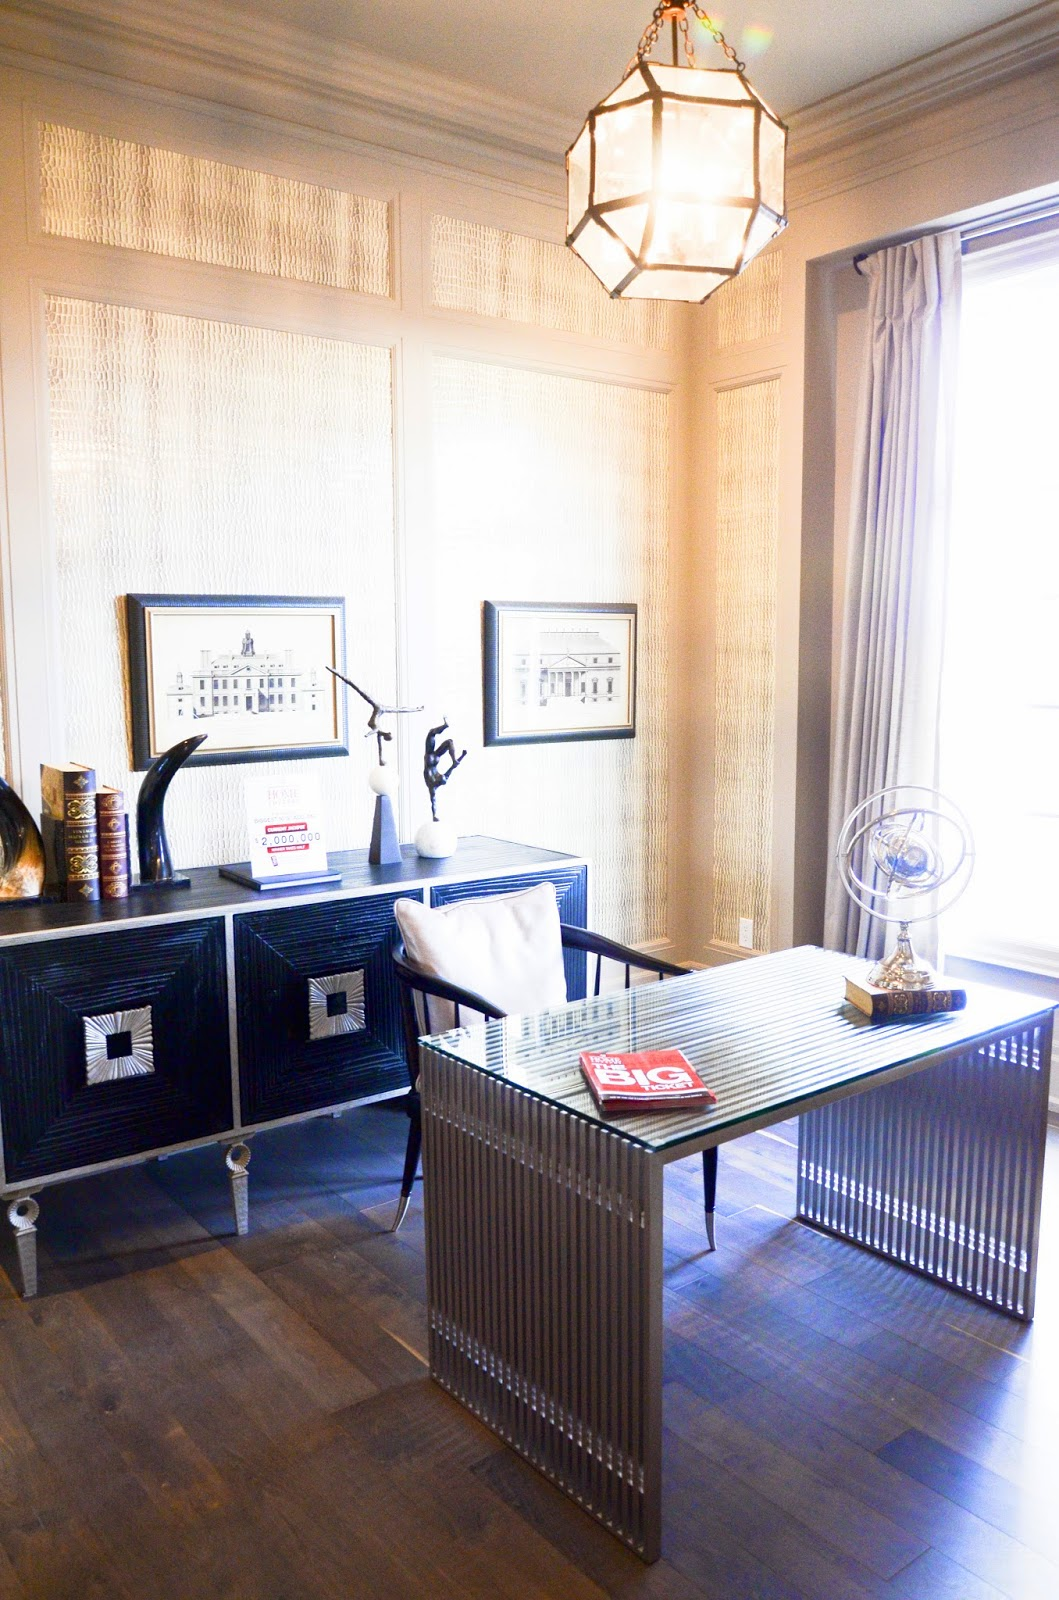 PMLOTTO KLEINBURG SHOWROOM: Home office decor ideas